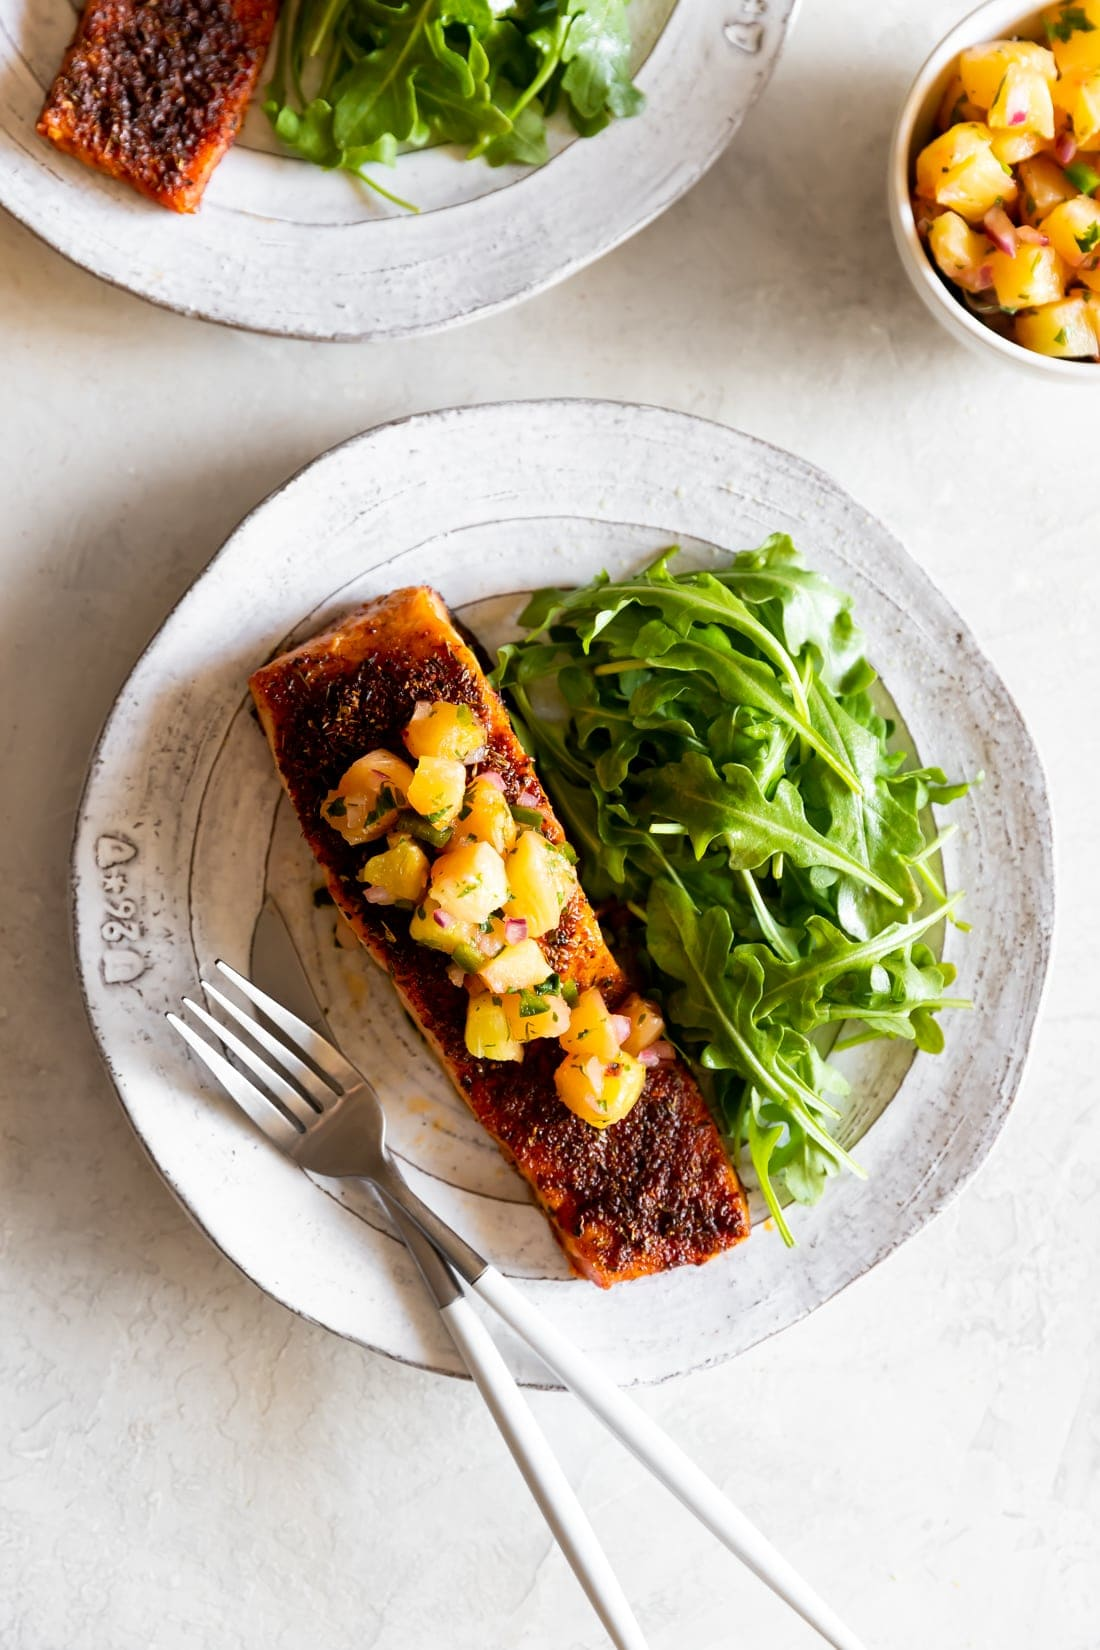 blackened salmon with pineapple jalapeno salsa on a white plate